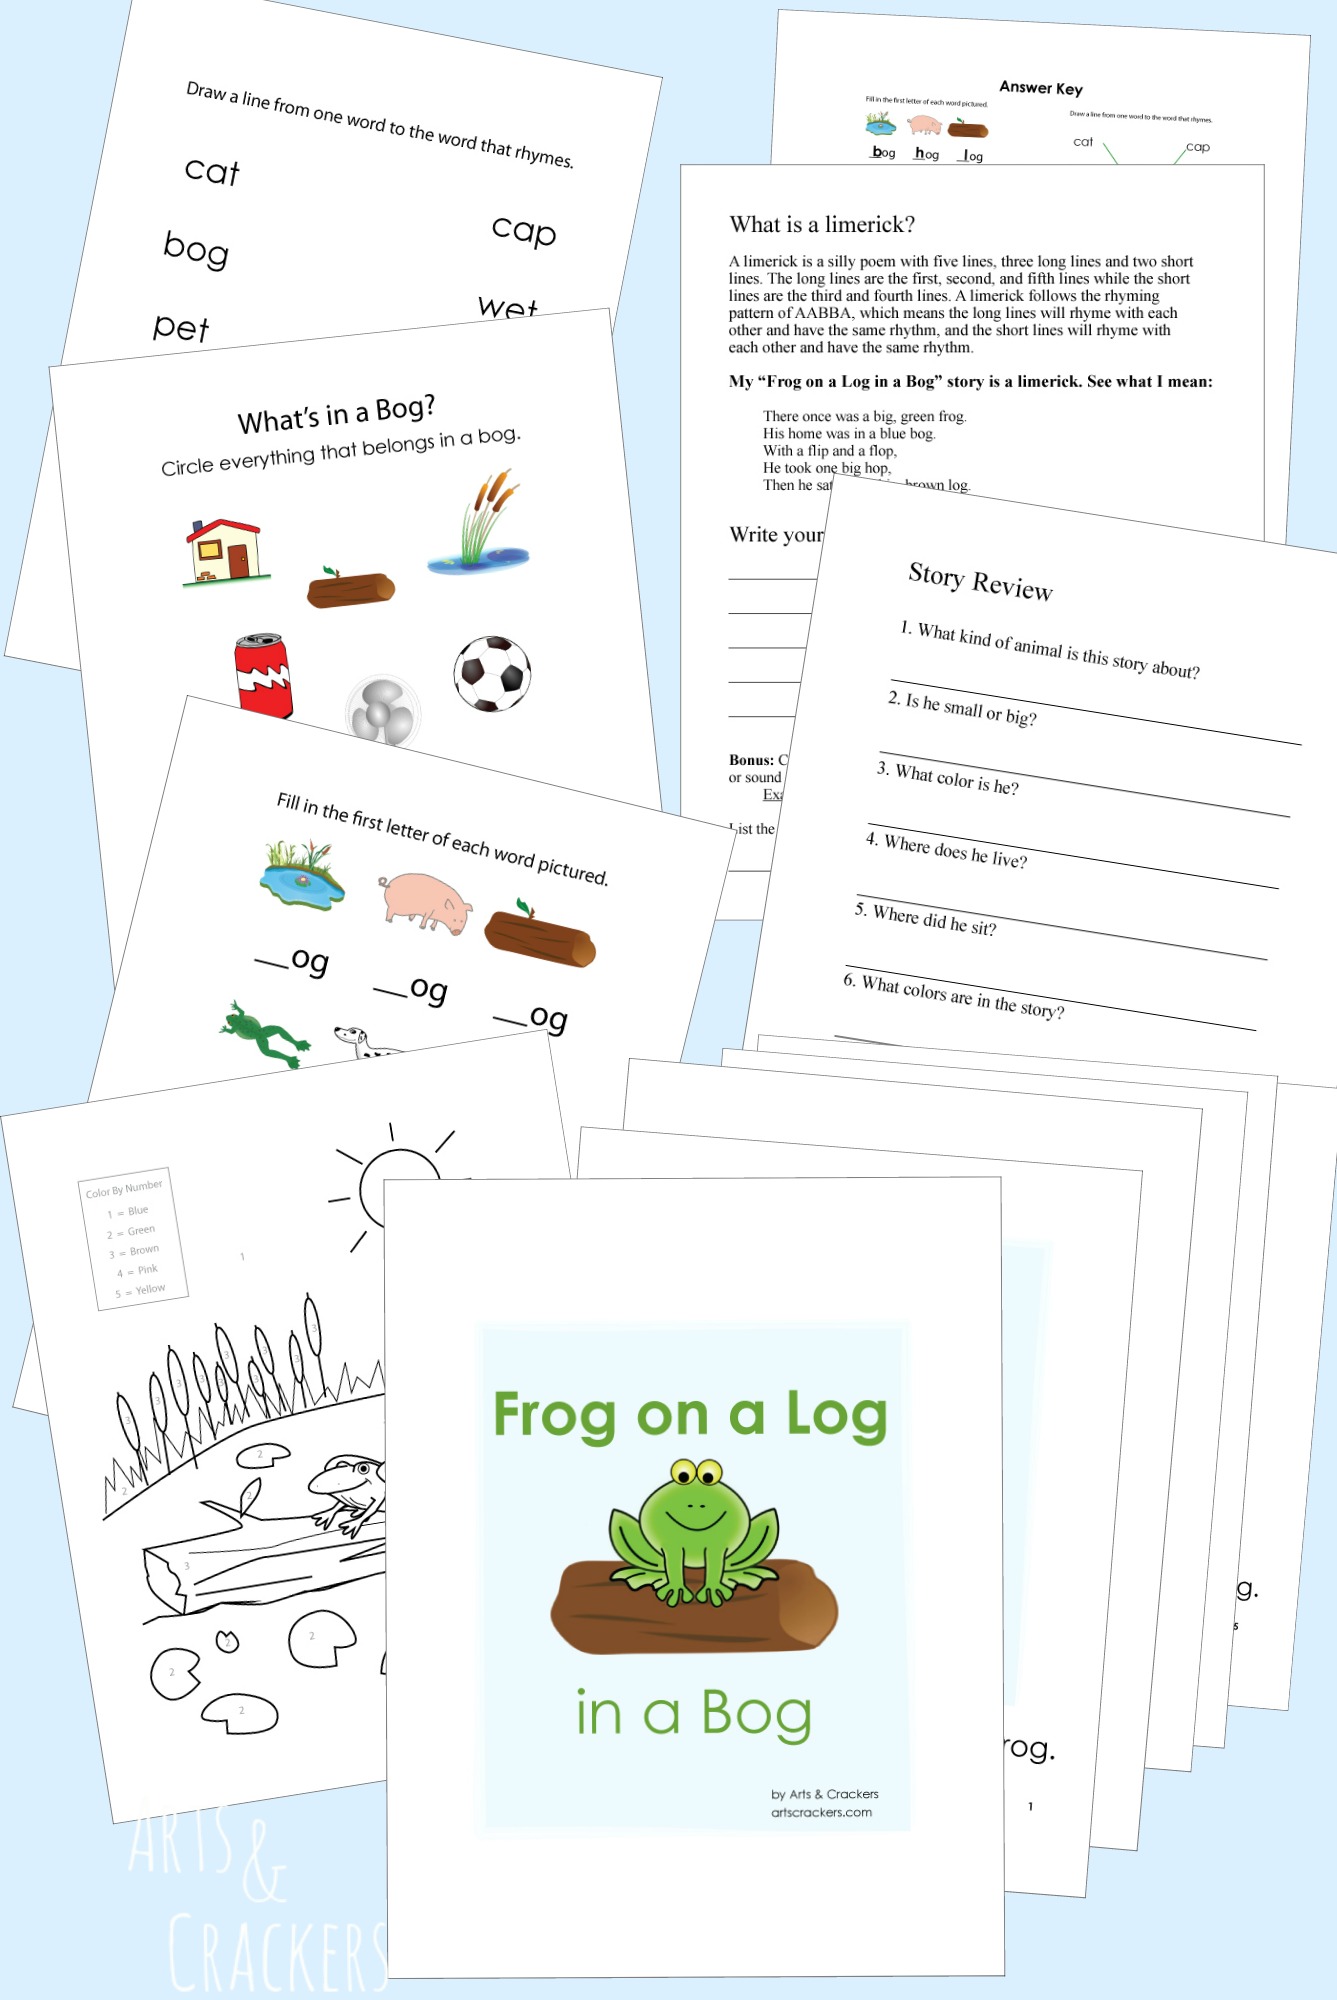 Printable 'Frog on a Log in a Bog' Book and Activities